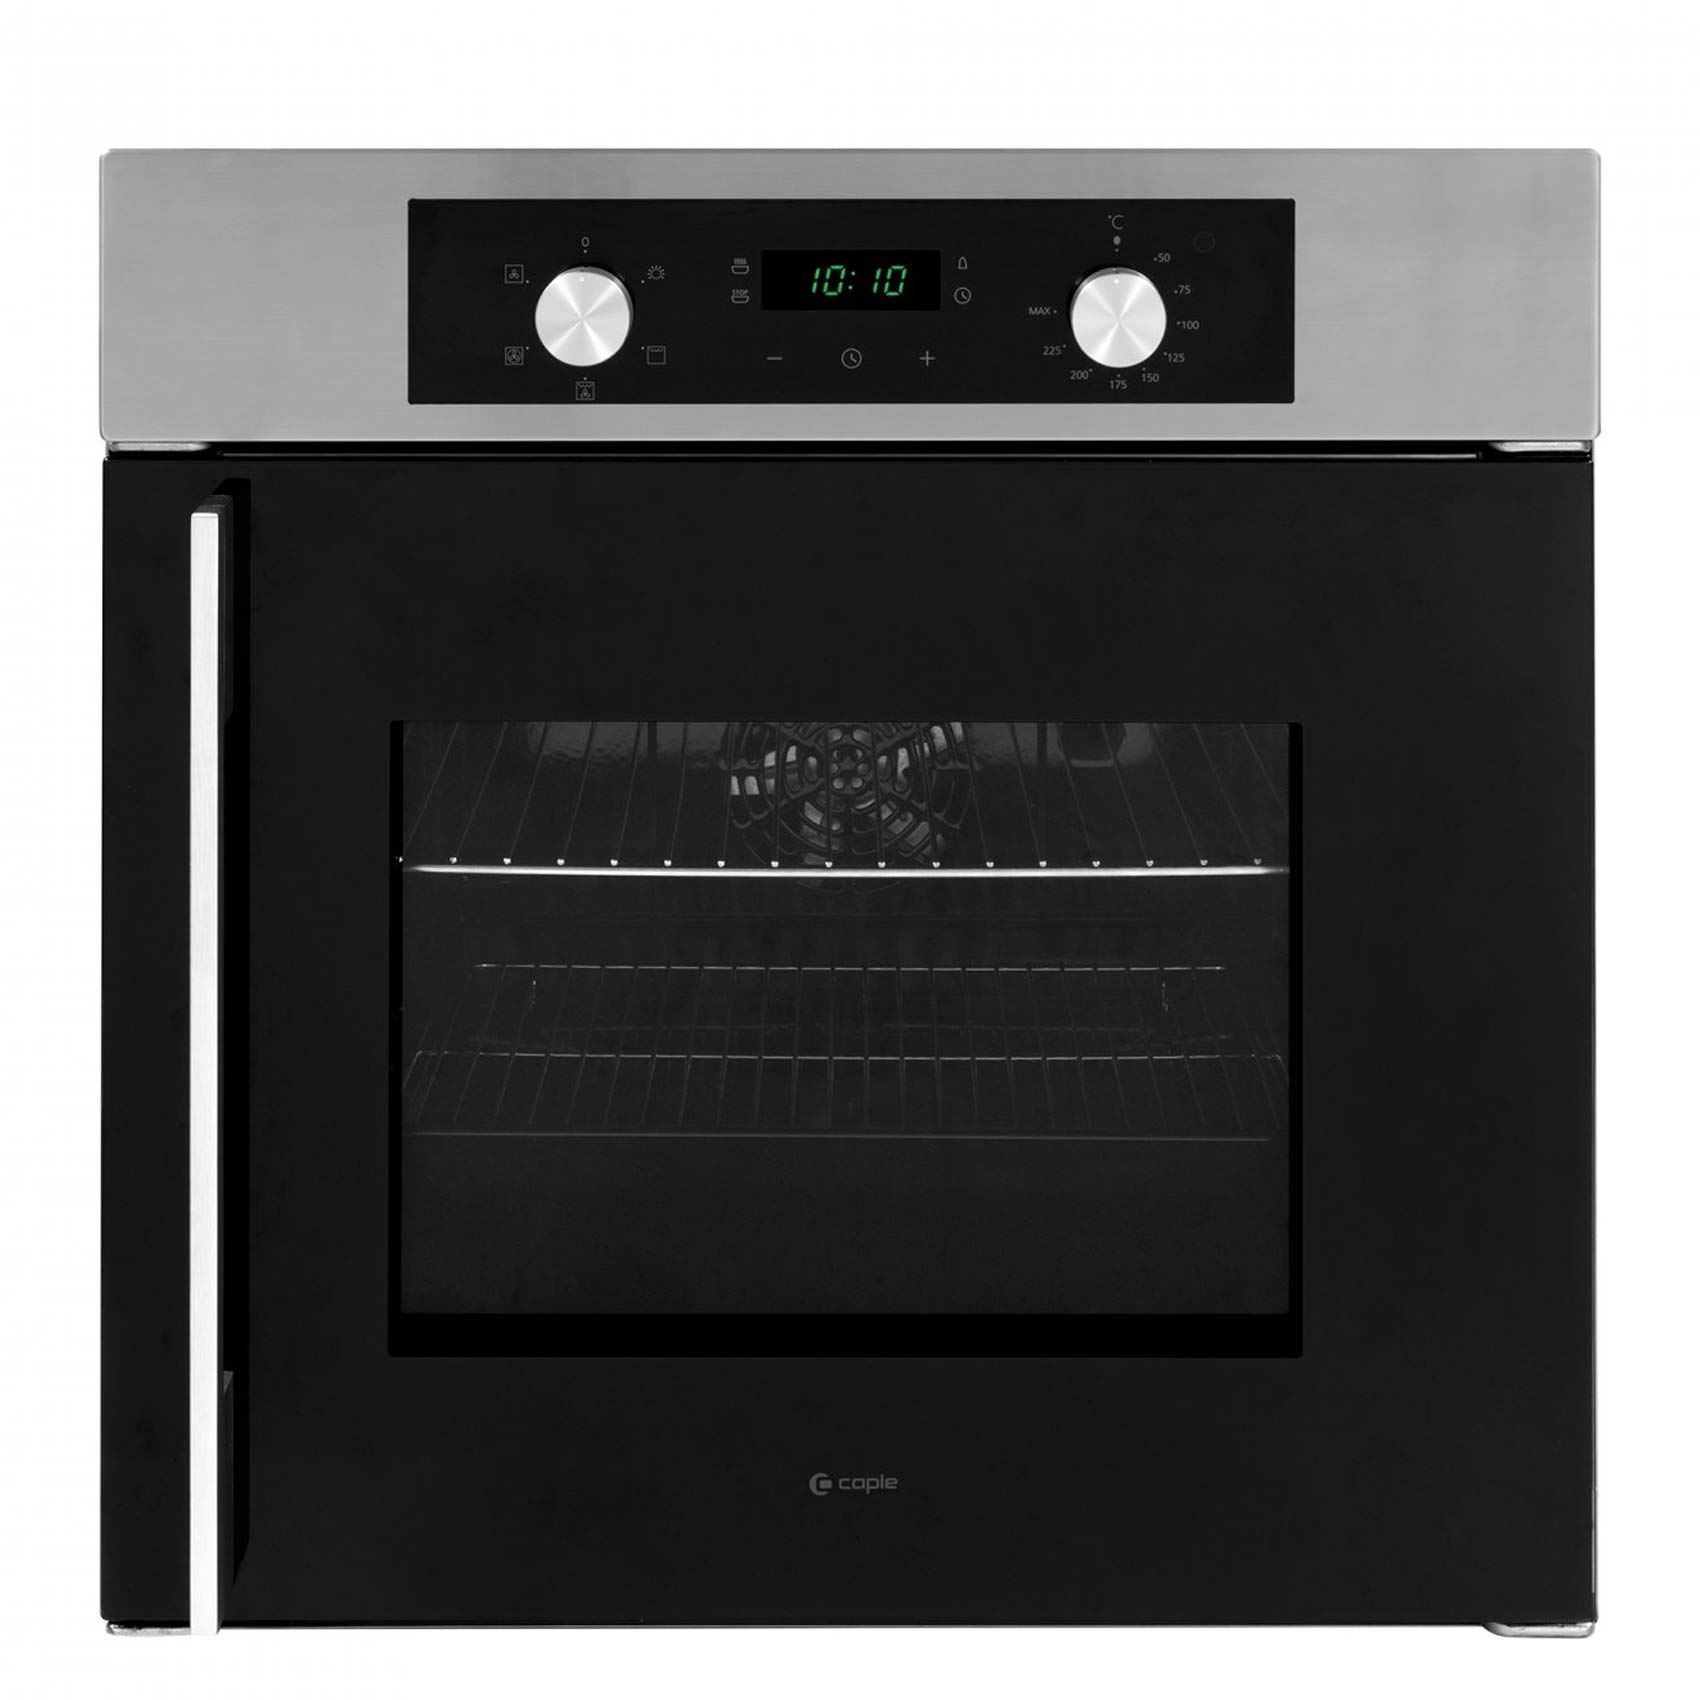 Caple C2220 Side Opening Electric Single Oven Appliance